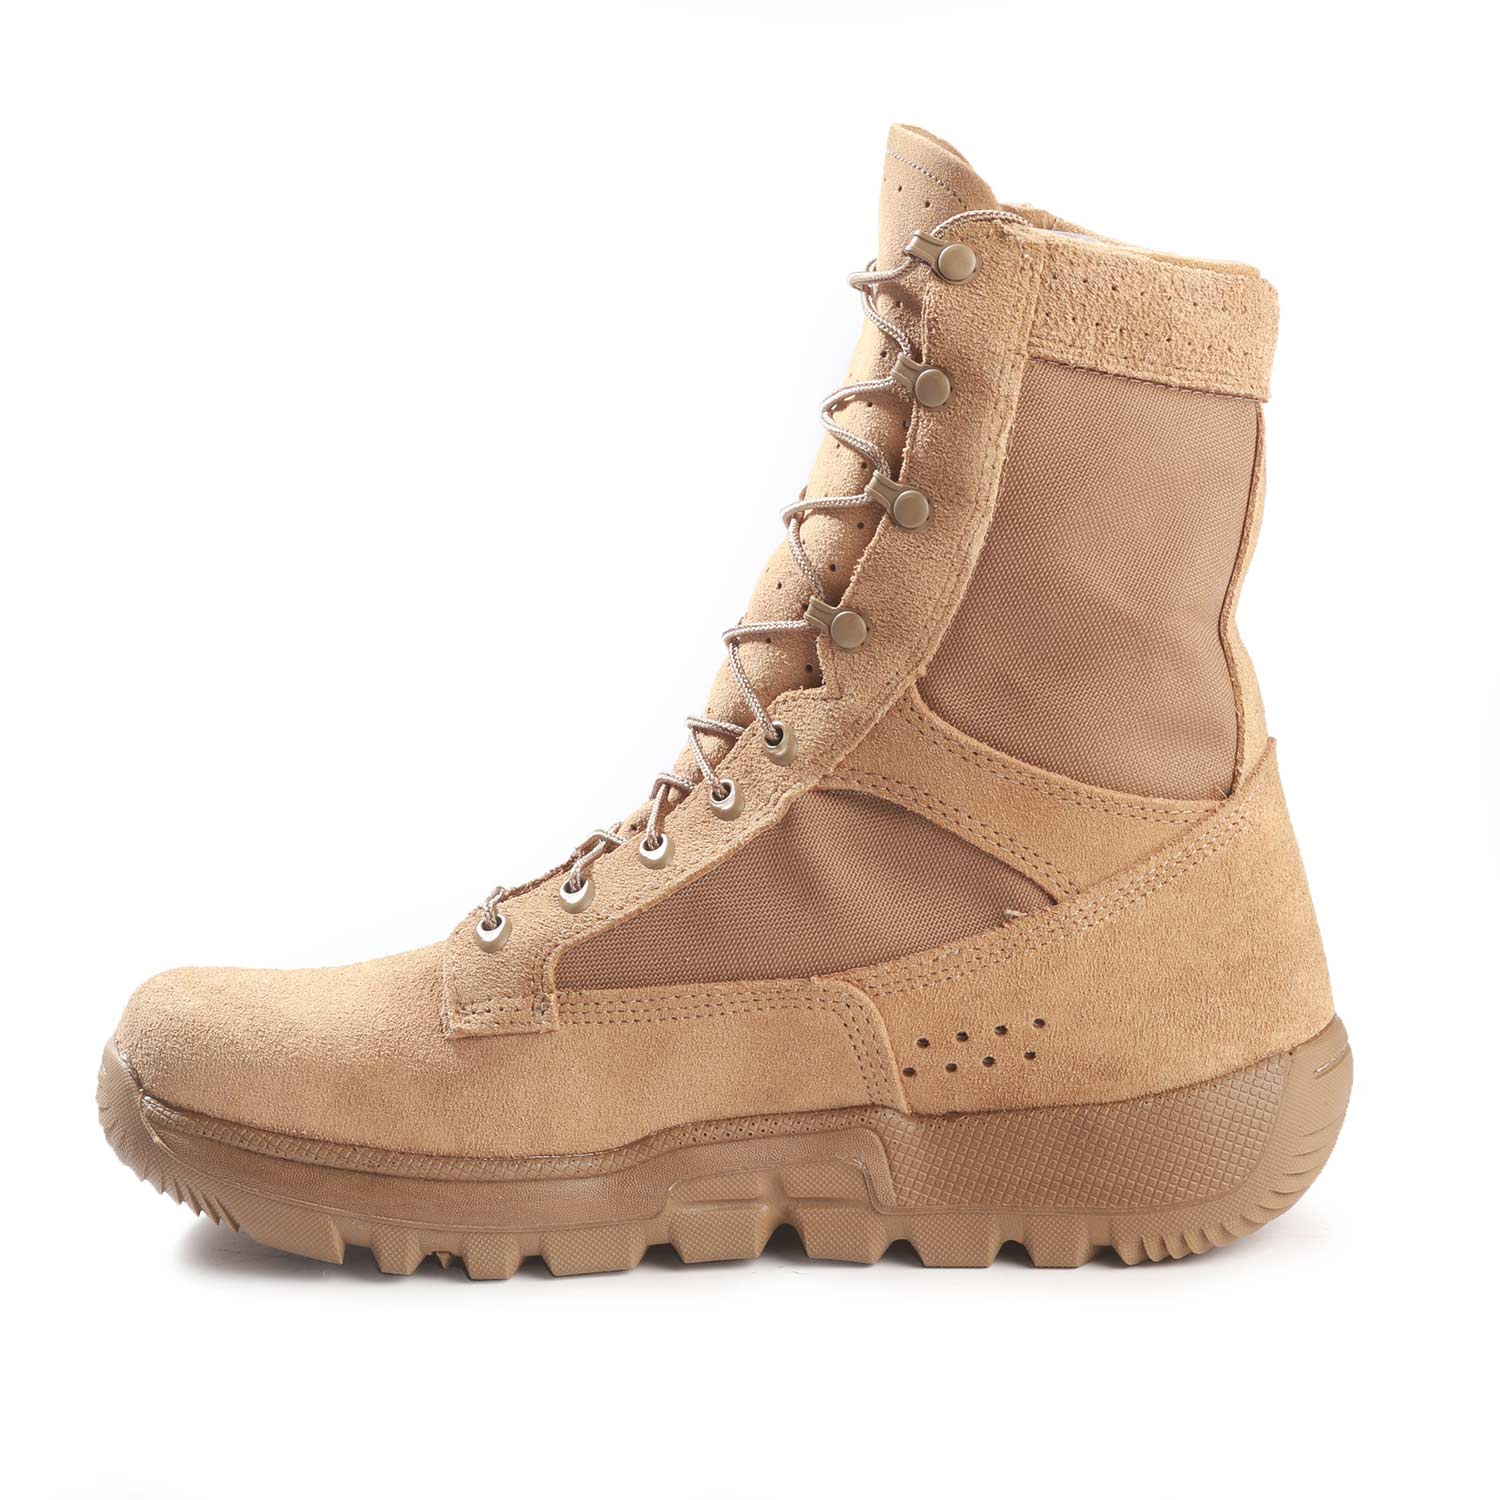 Rocky Rkc042 Army Coyote Brown C6 Lightweight Boot